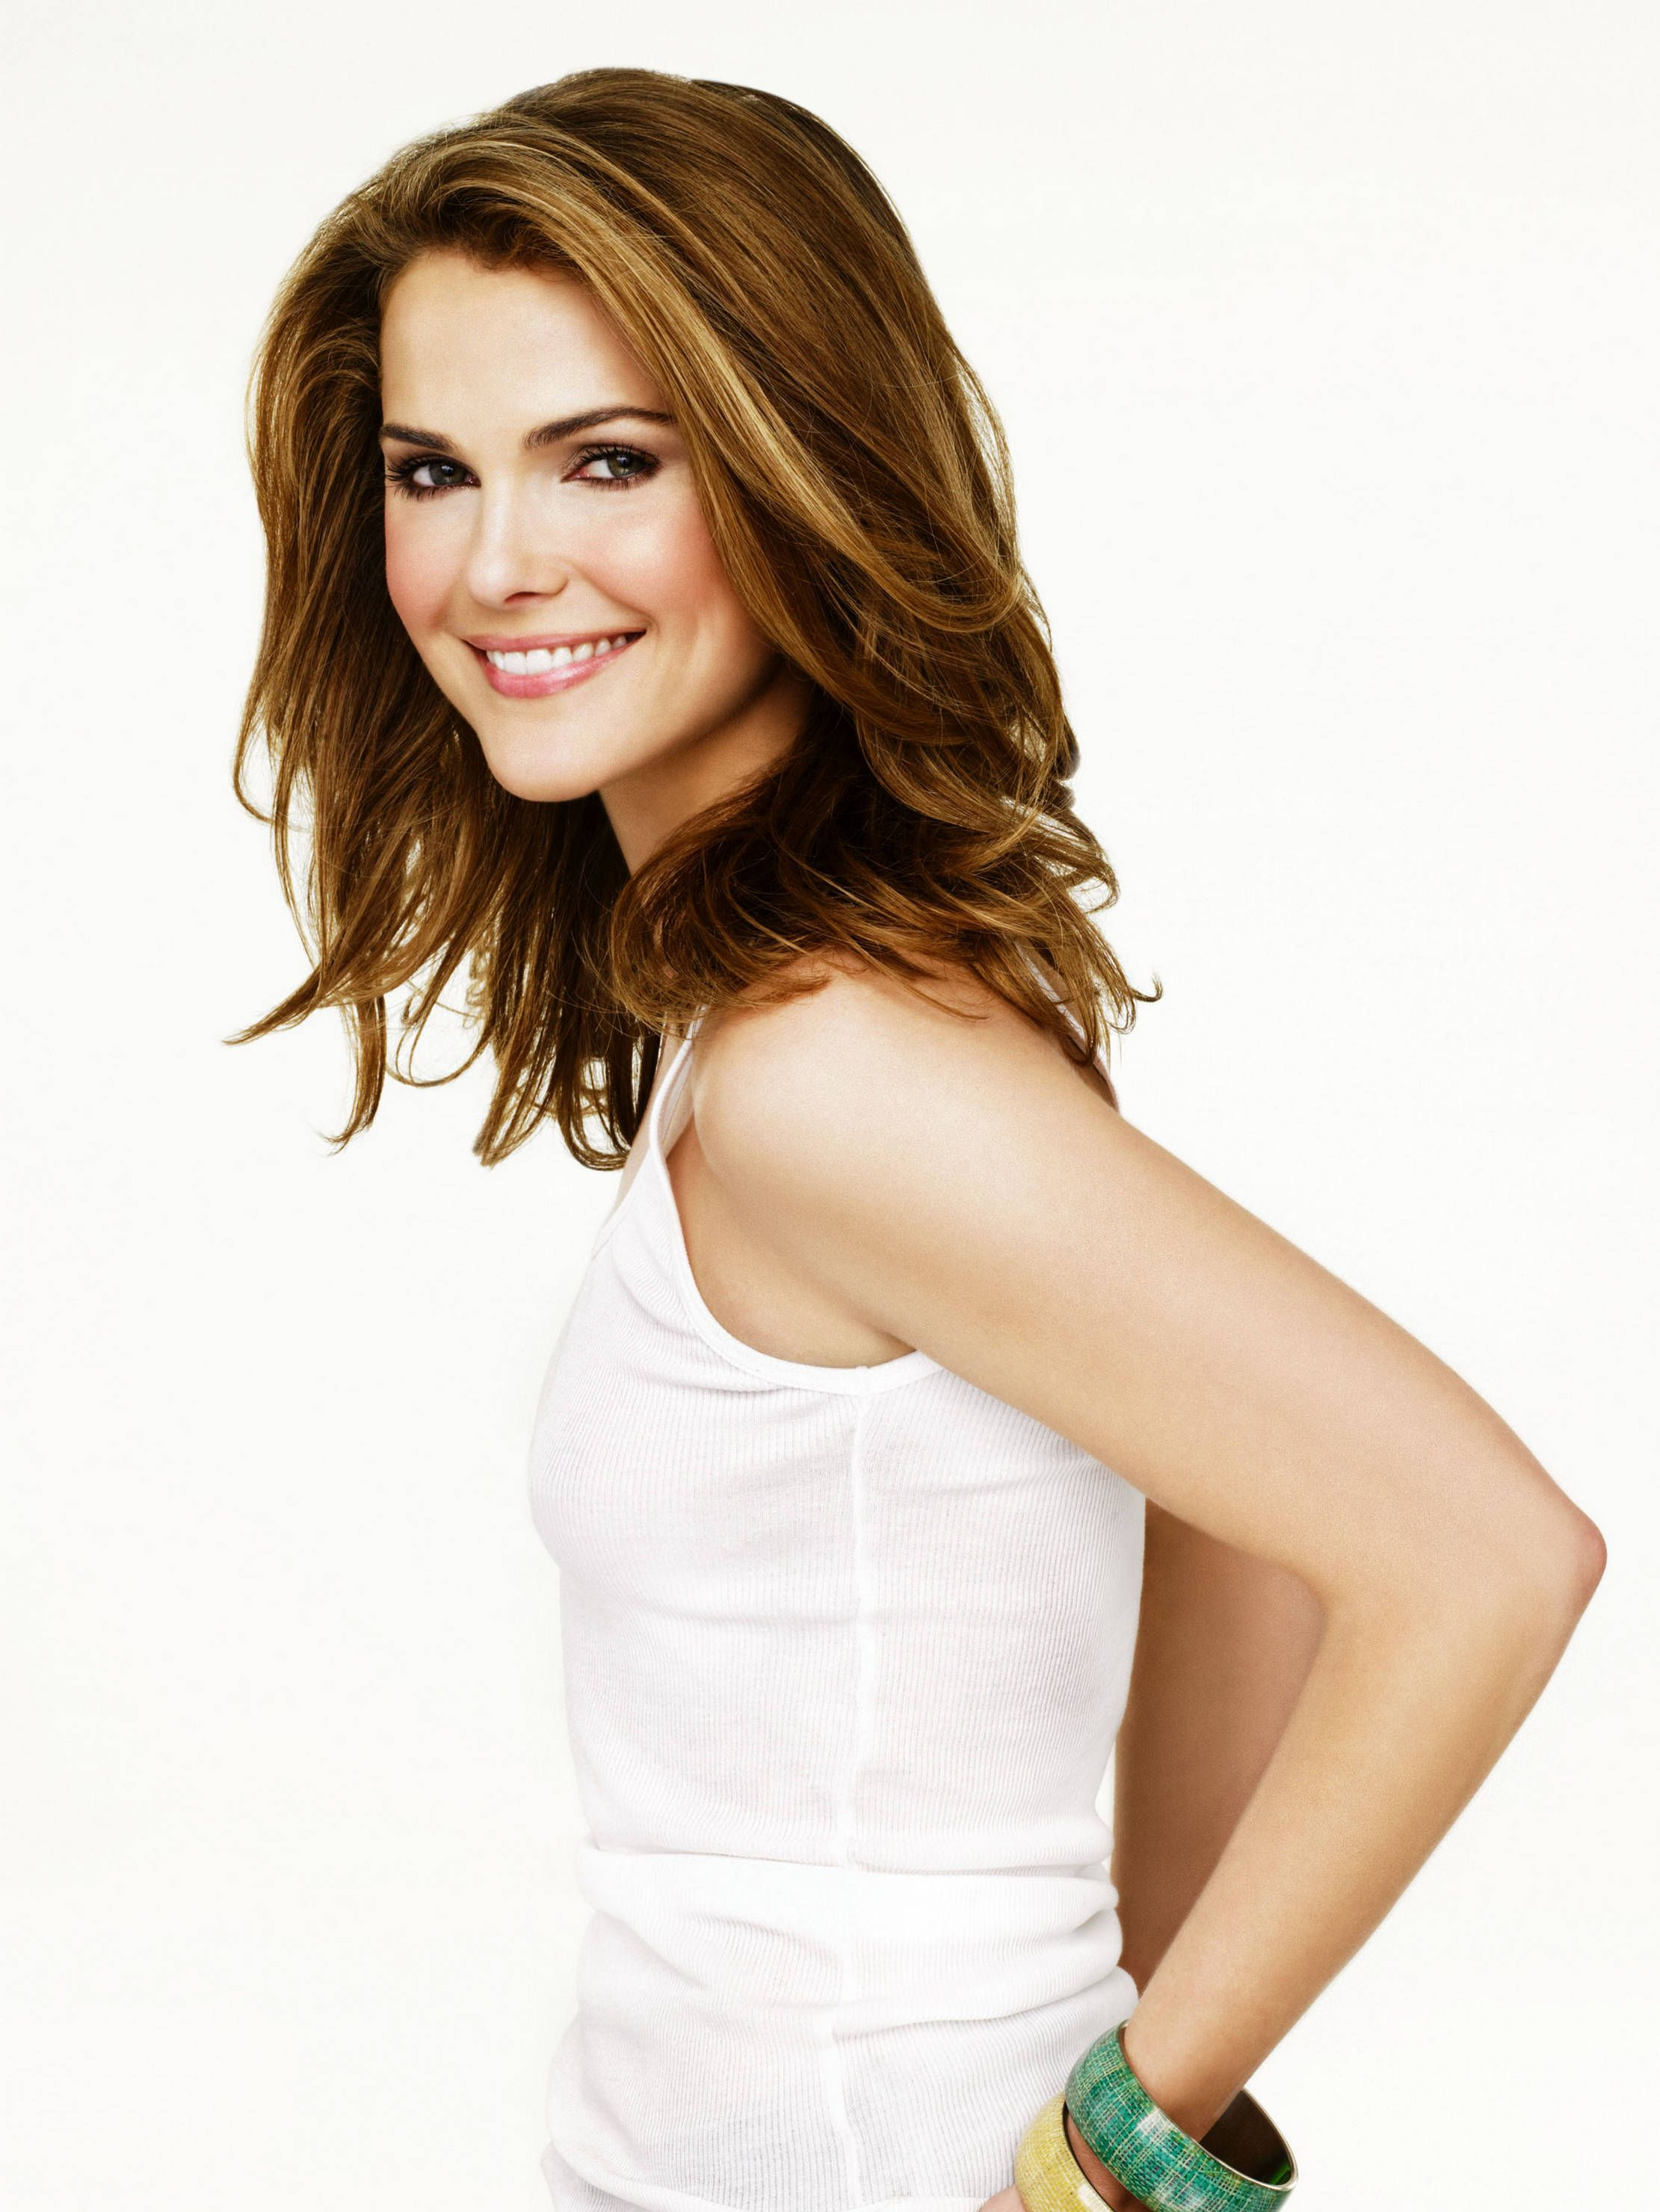 keri russell u003d crush celebrity gossip is a hobby